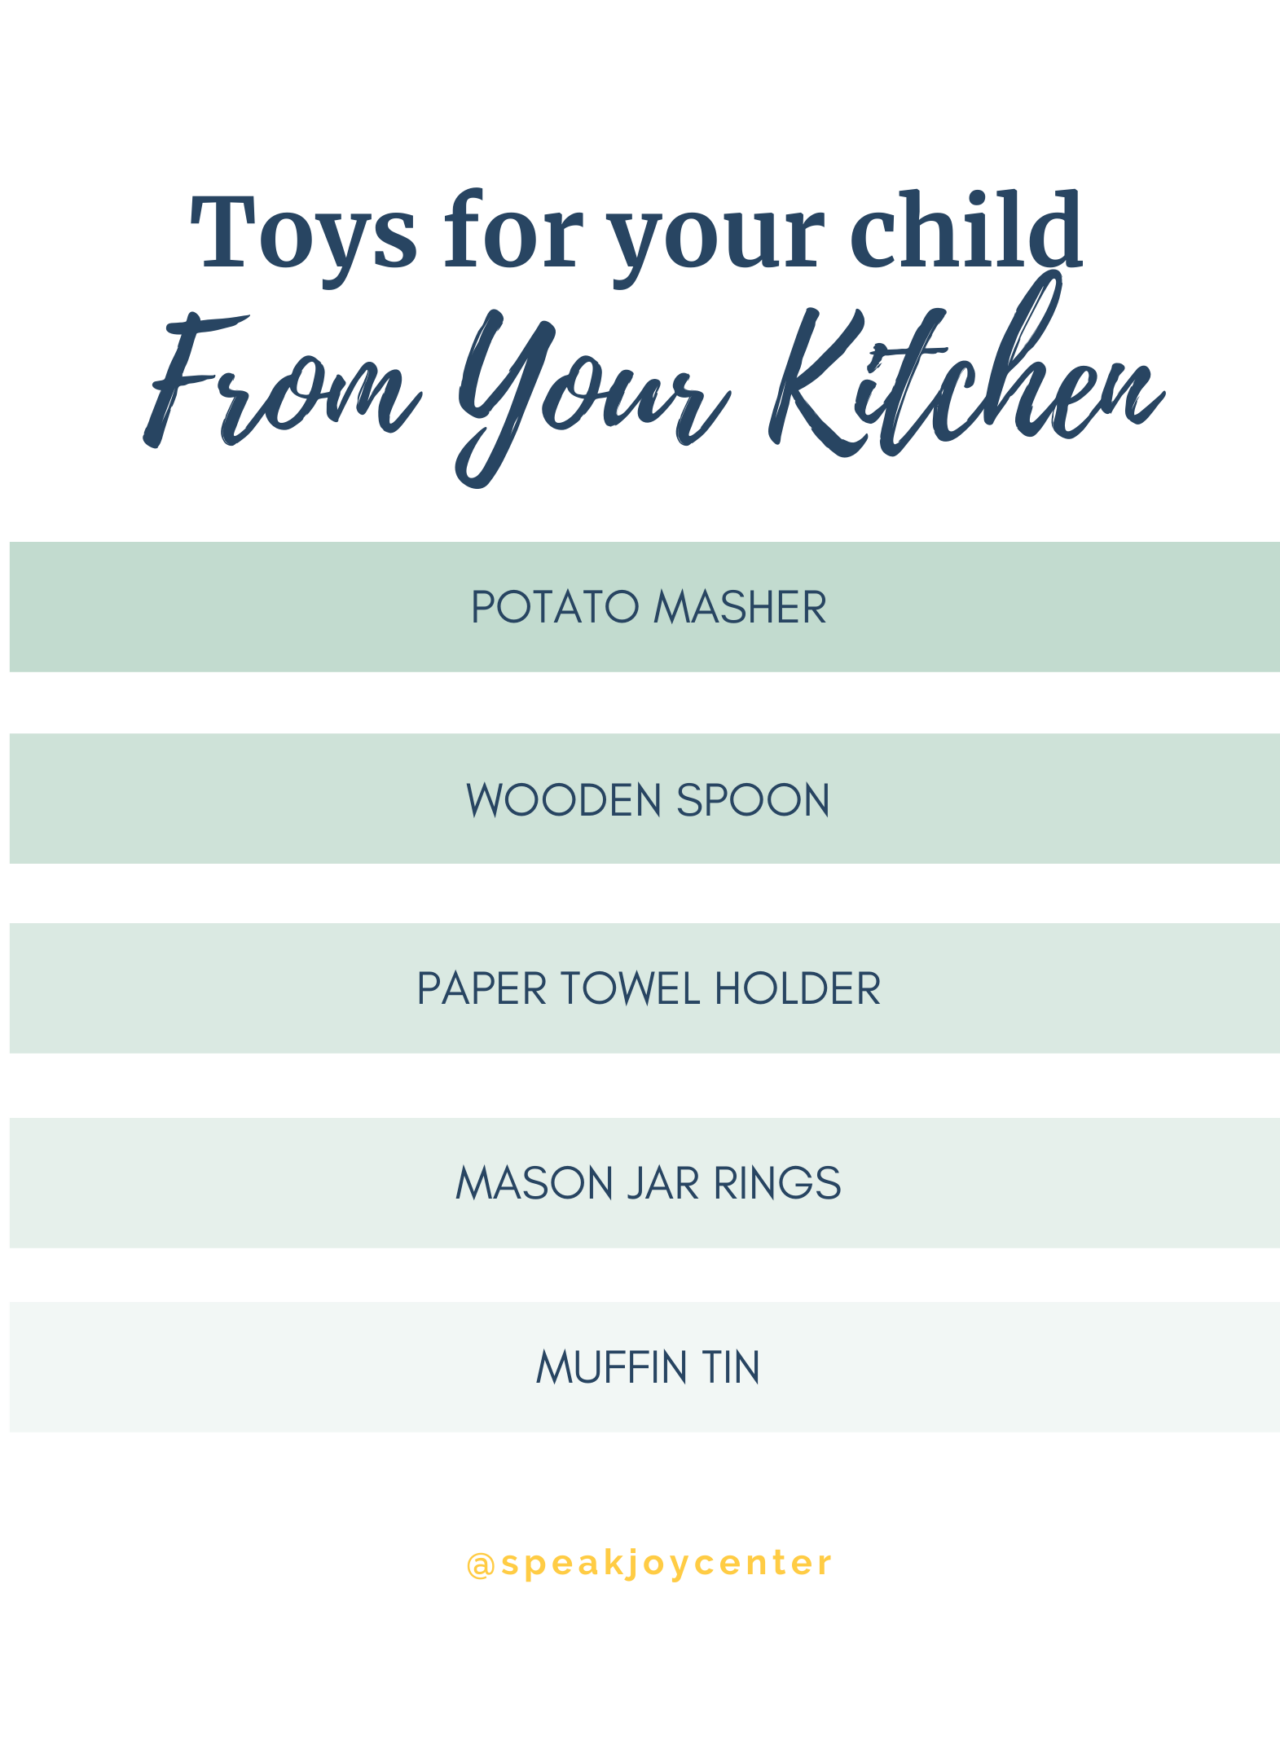 Discover new toys in your kitchen